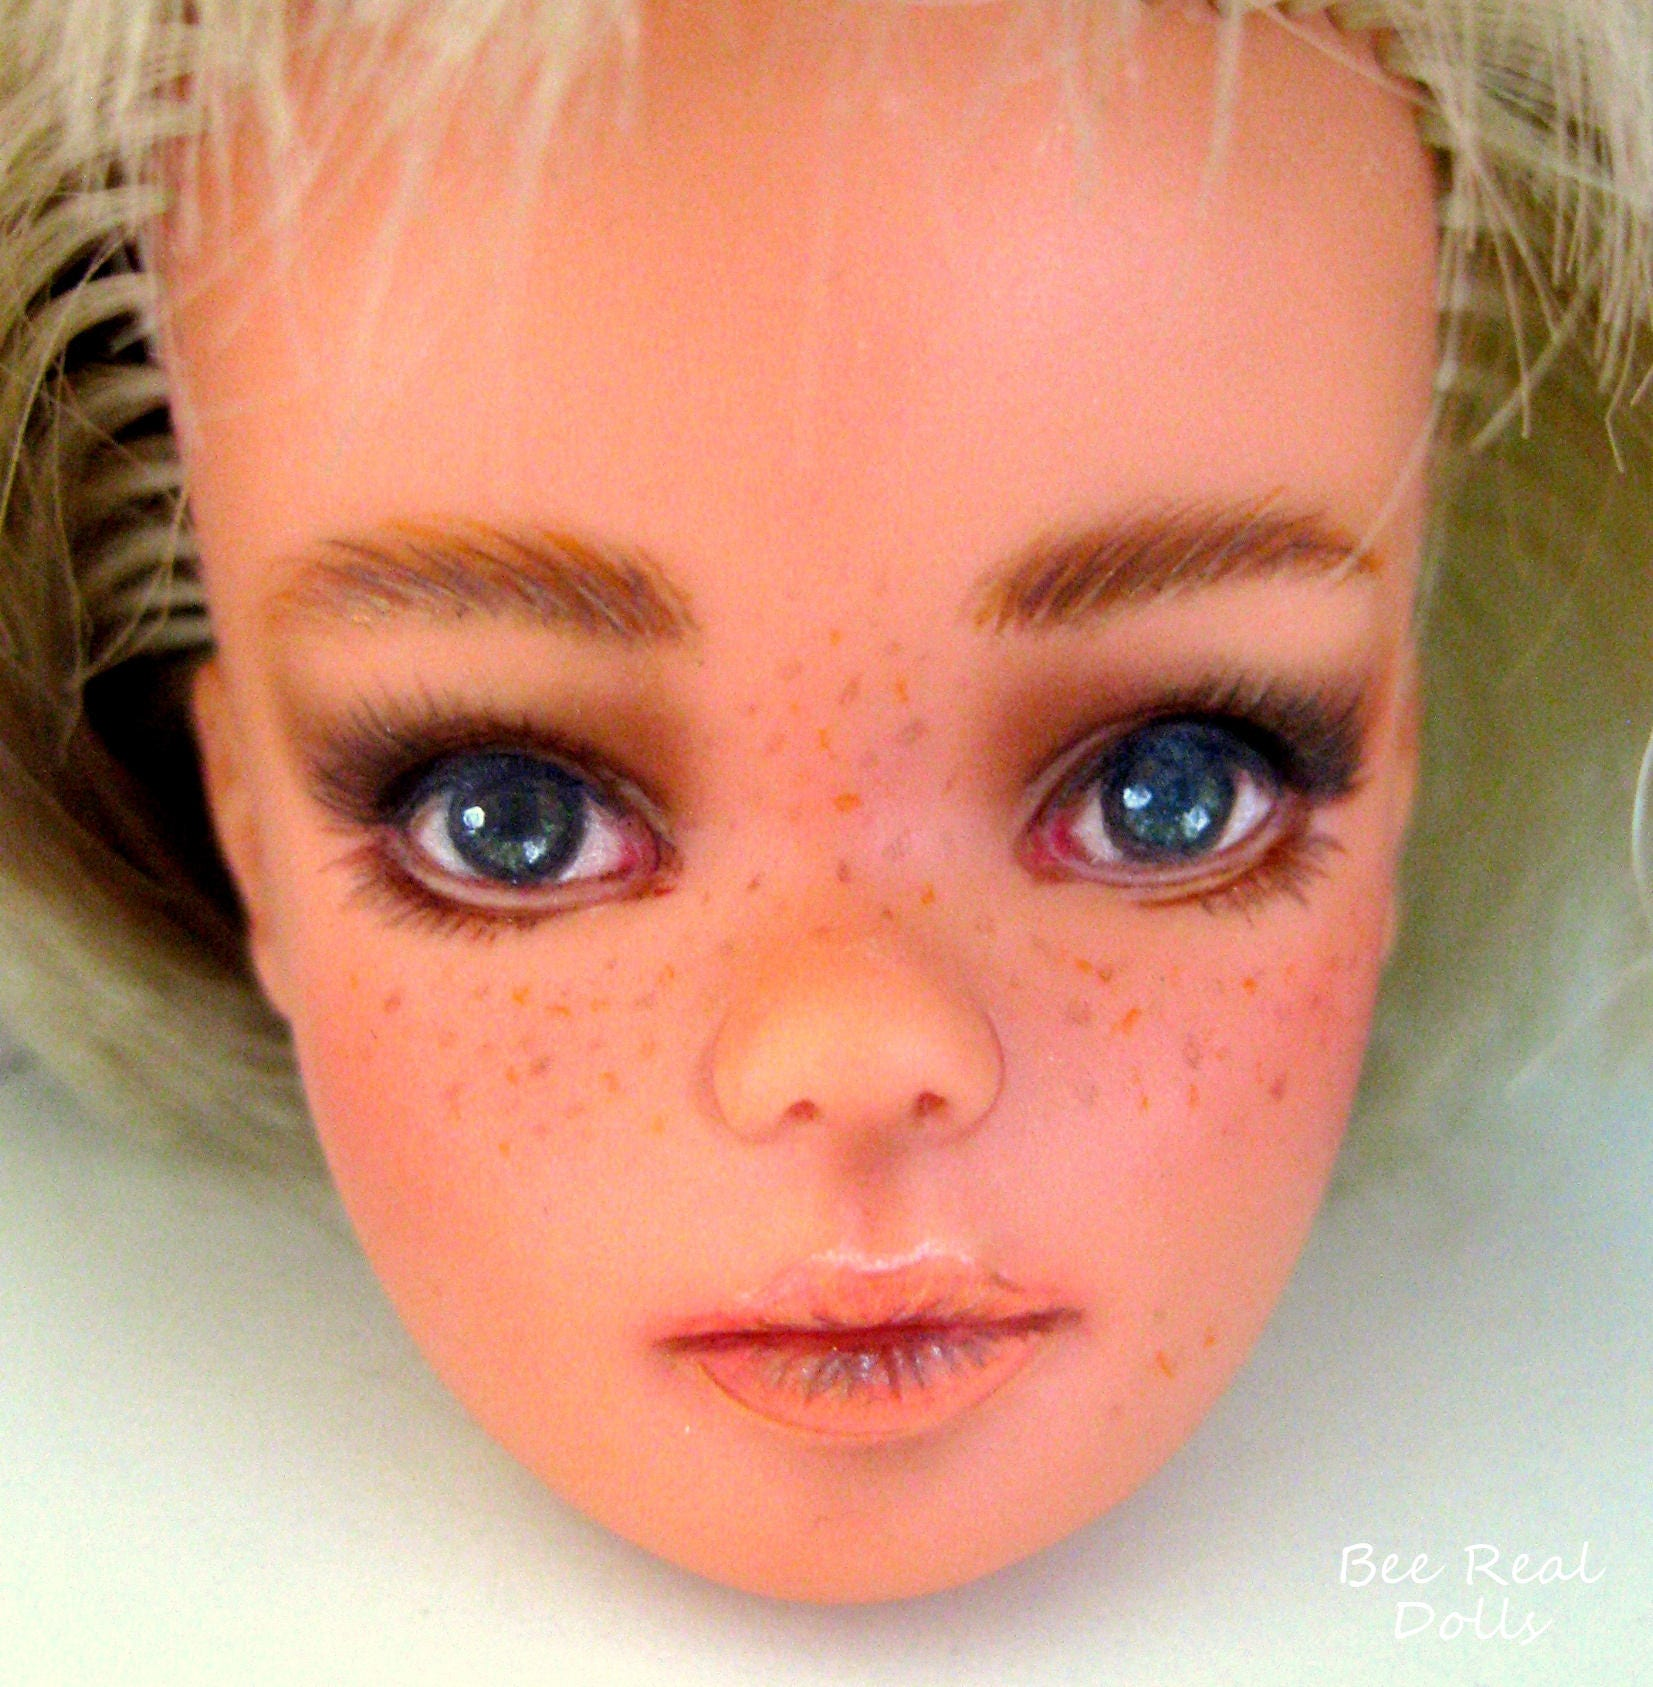 OOAK commissions doll repaint Custom lifelike dolls custom Sindy doll face 1970 Sindy doll repaint personalized Sindy realistic dolls